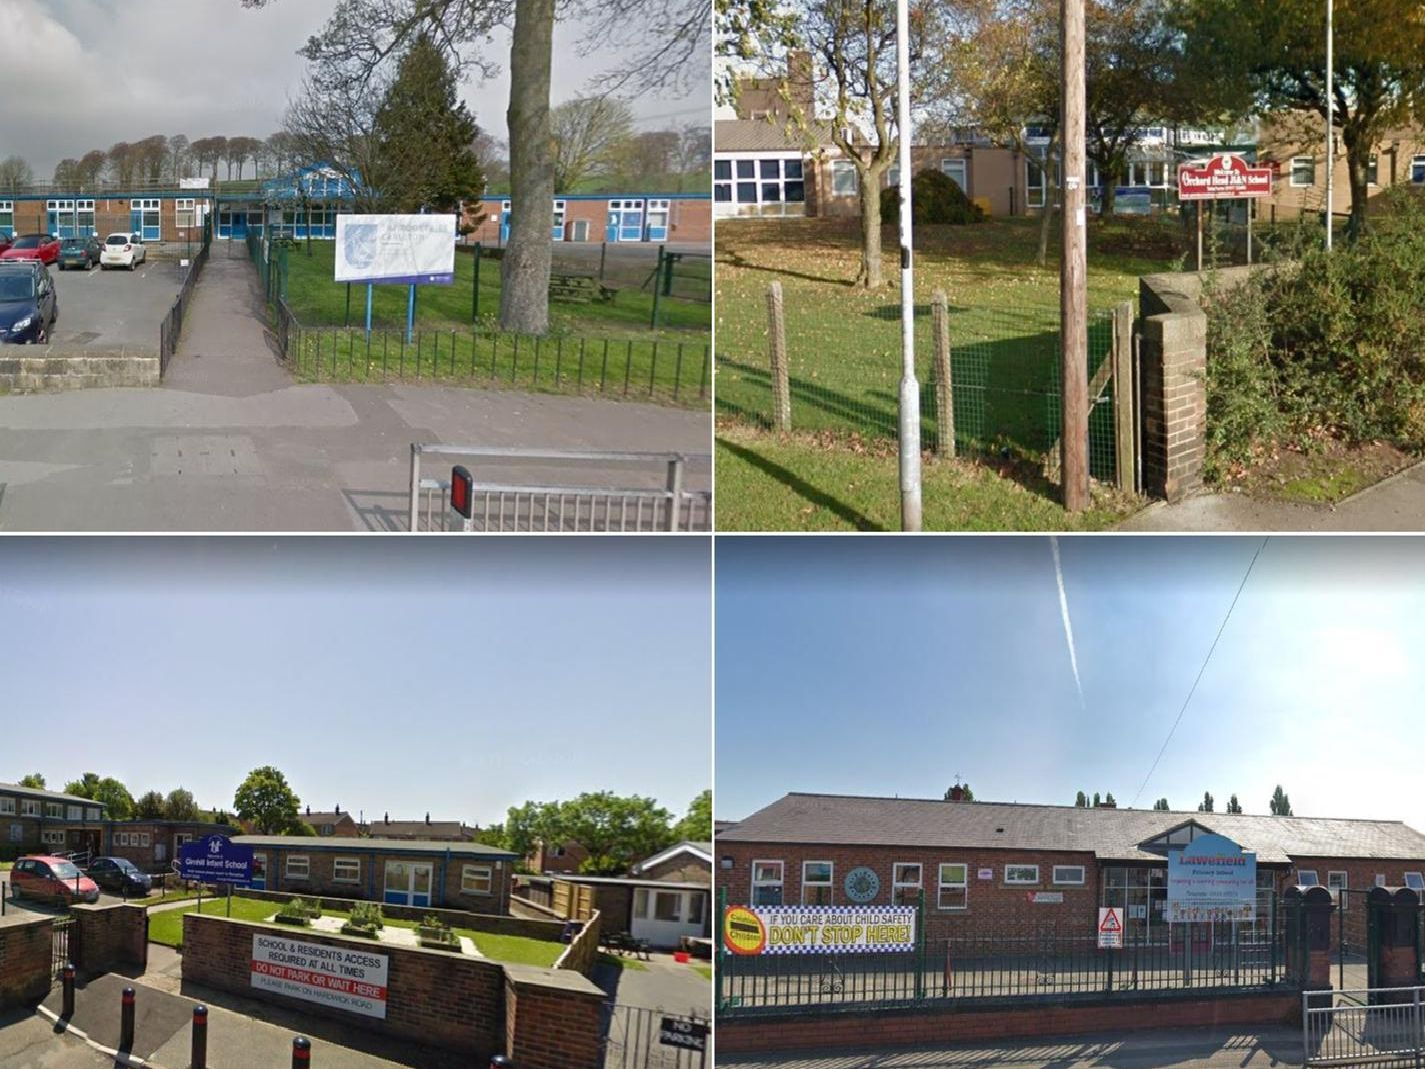 These are the Ofsted reports for the Wakefield schools investigated so far this year.